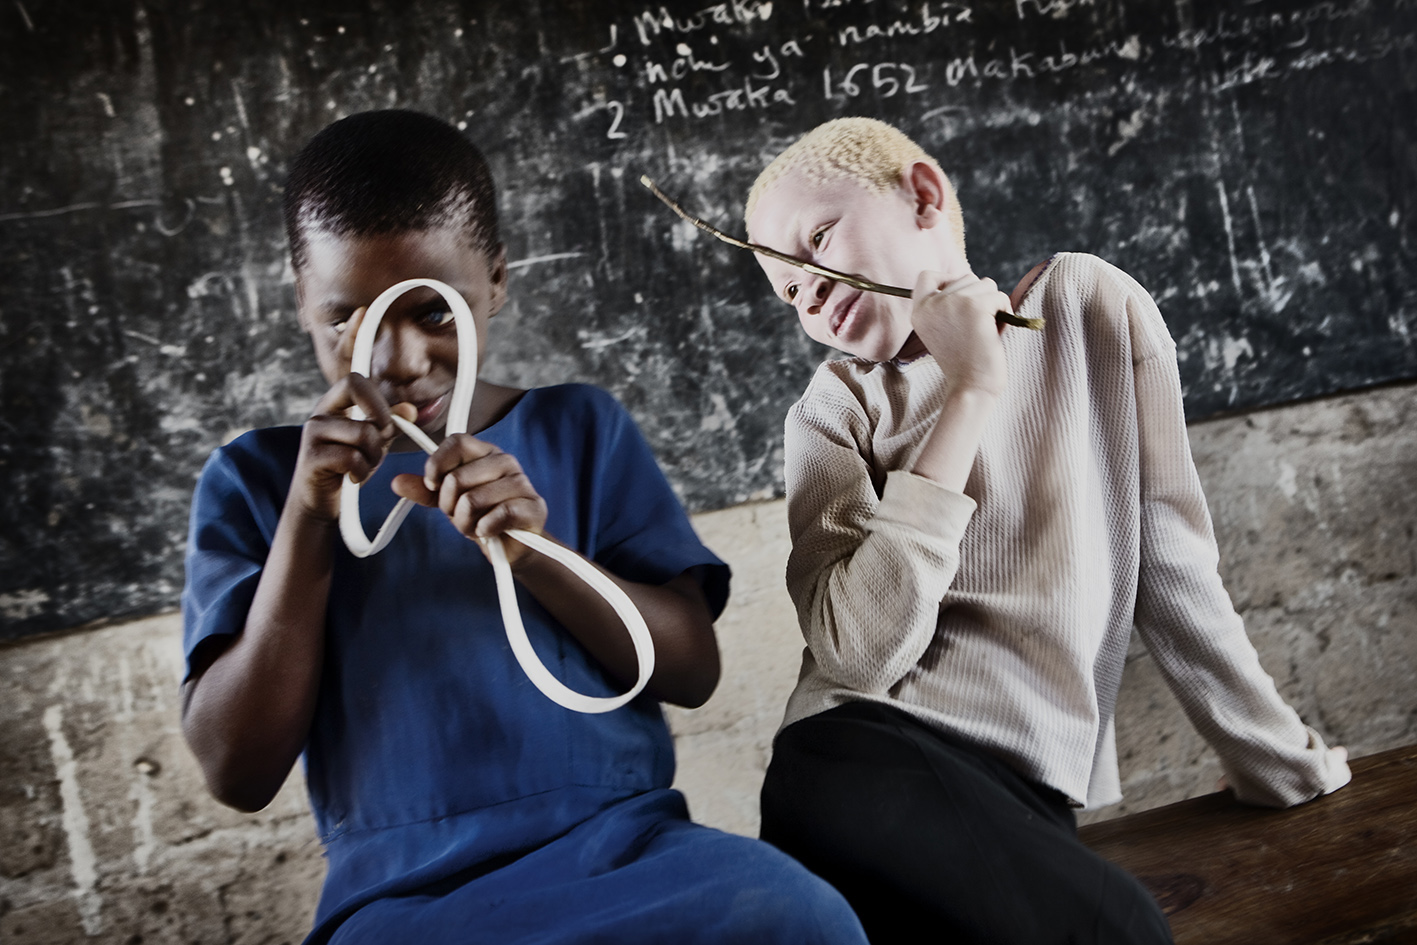 Lack of pigment makes it difficult to be outdoors in the daytime. Albinism is a much more serious condition in Africa than it is in the Western world.